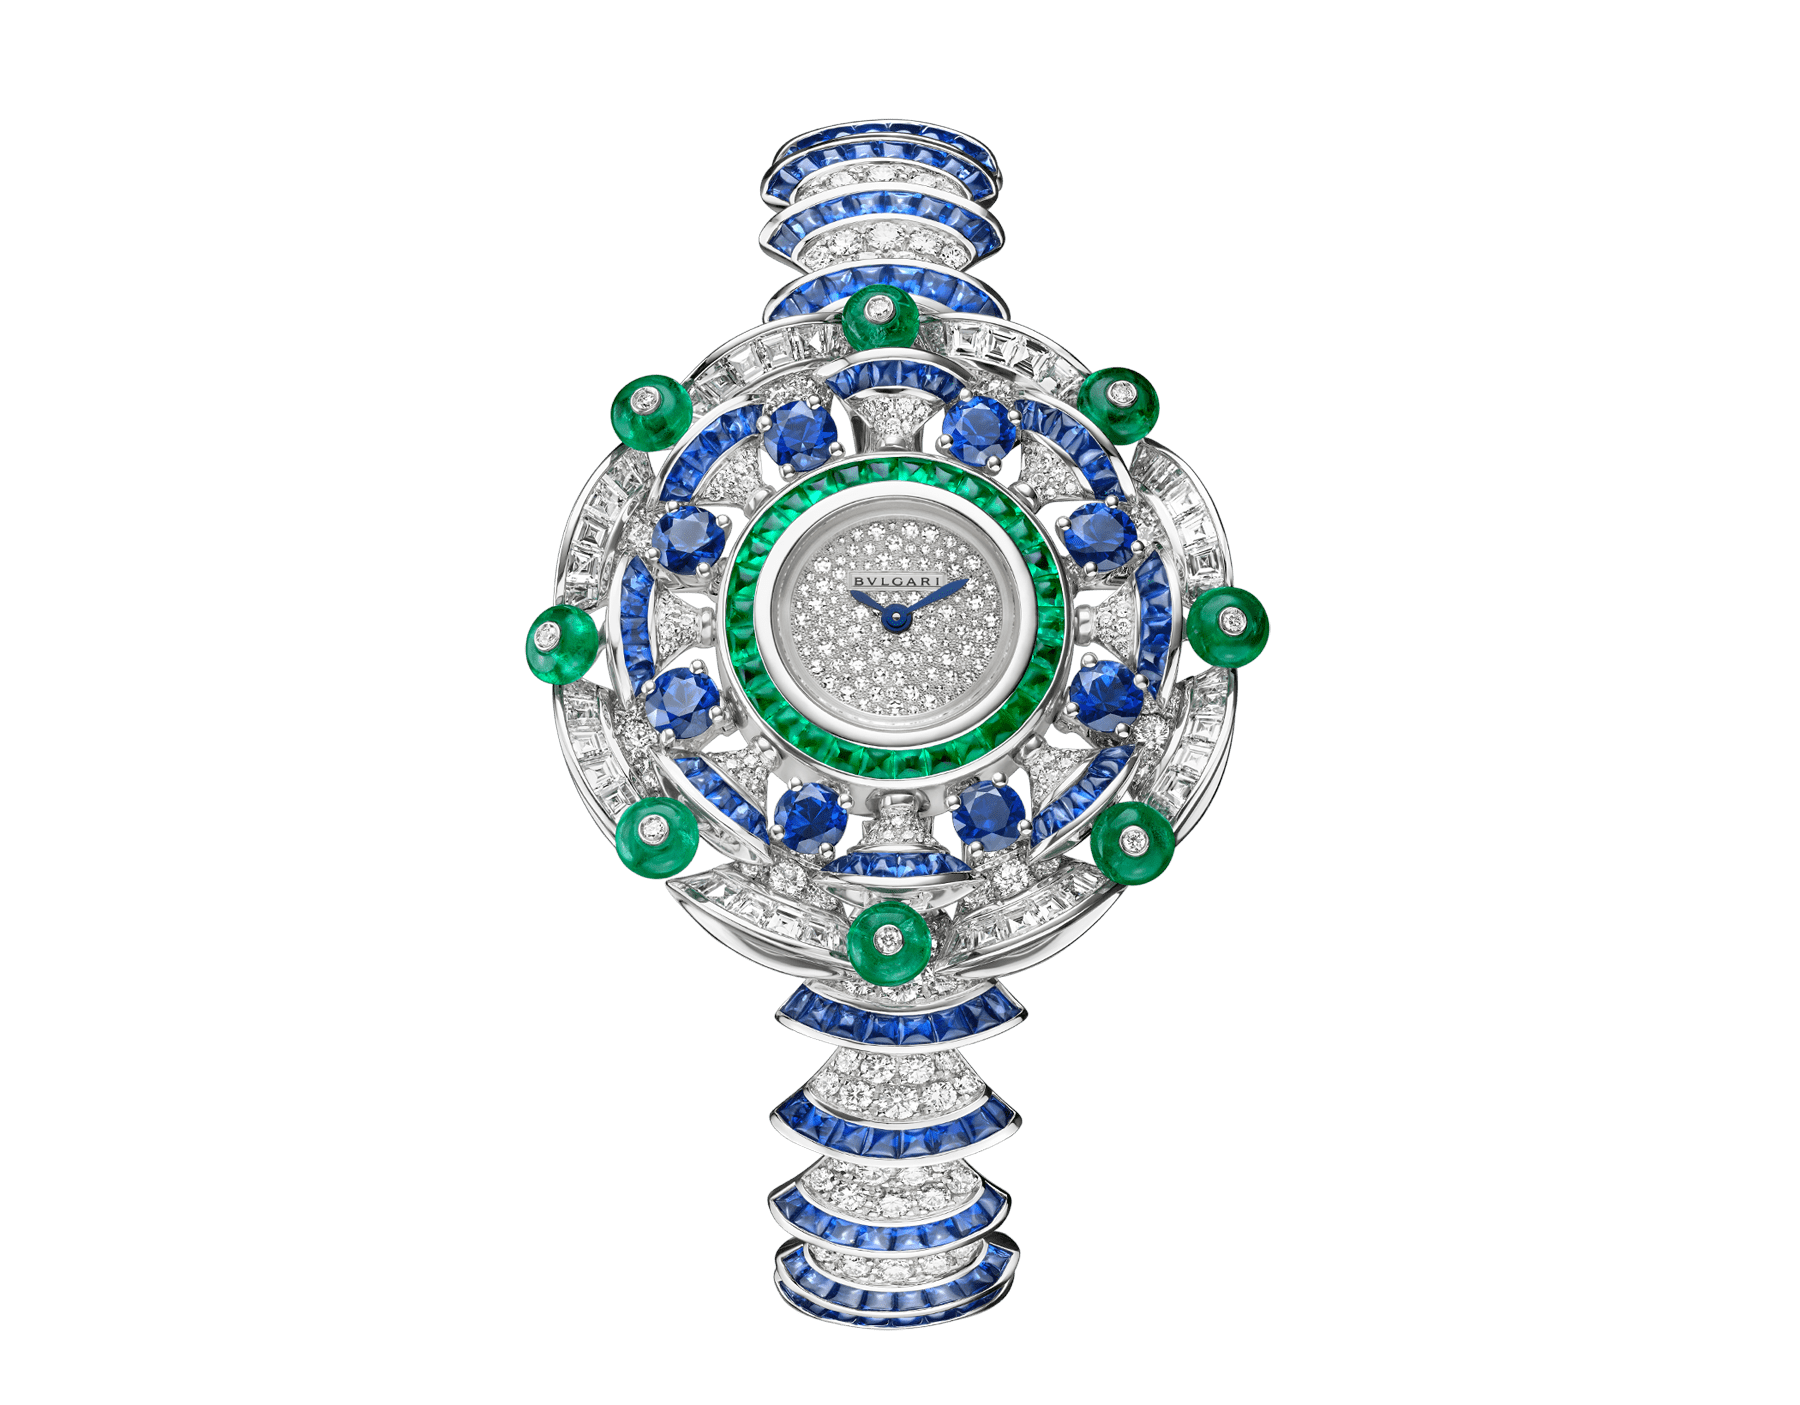 DIVAS' DREAM watch with 18 kt white gold case set with baguette and brilliant-cut diamonds, round and buff-cut sapphires, buff-cut emeralds and emeralds beads, snow pavé dial, 18 kt white gold bracelet set with brilliant-cut diamonds and buff-cut sapphires 102220 image 1